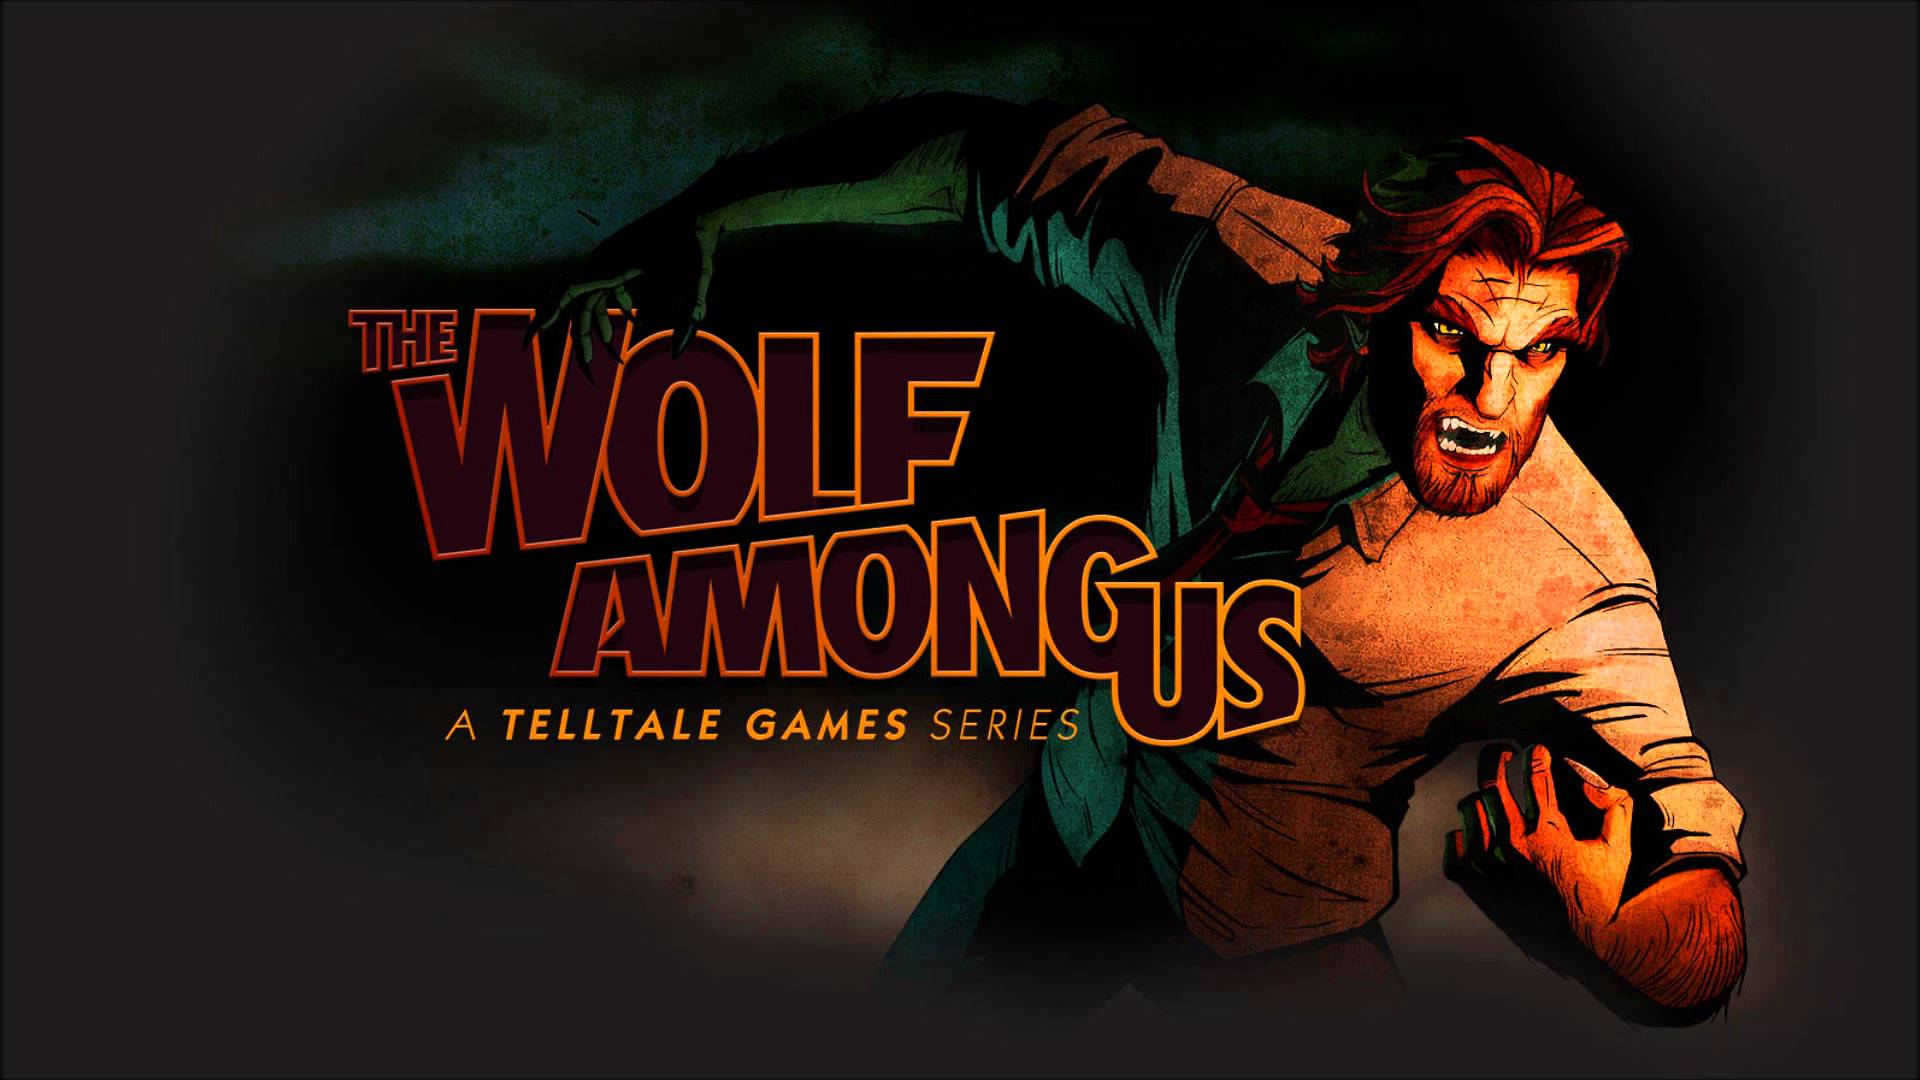 THE WOLF AMONG US game 6 wallpaper 1920x1080 169417 WallpaperUP 1920x1080